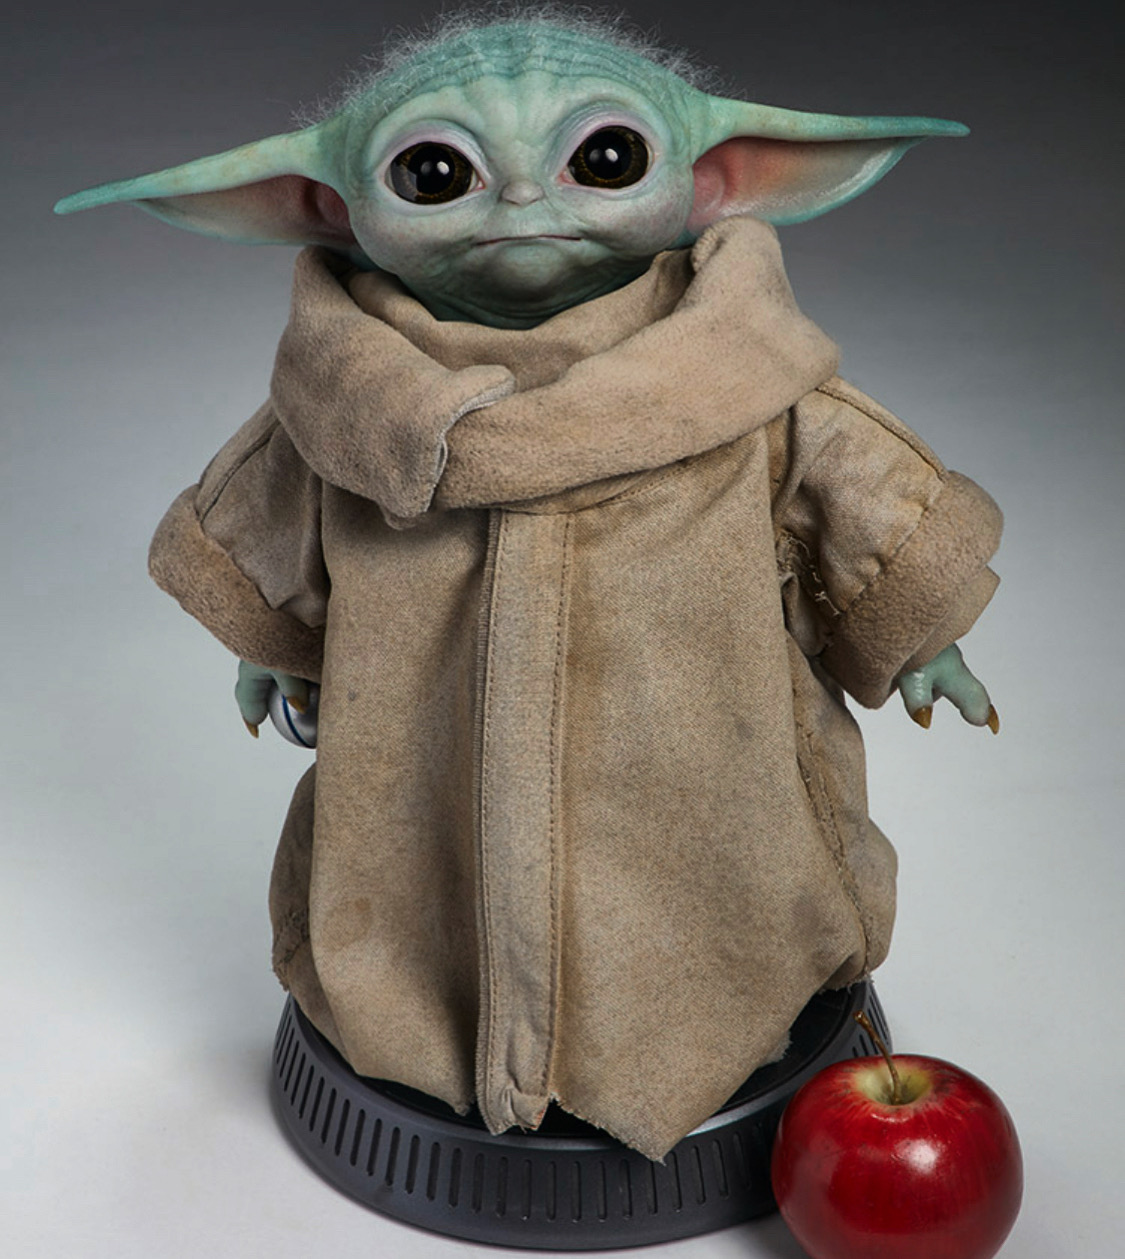 Want your own 'Baby Yoda'?